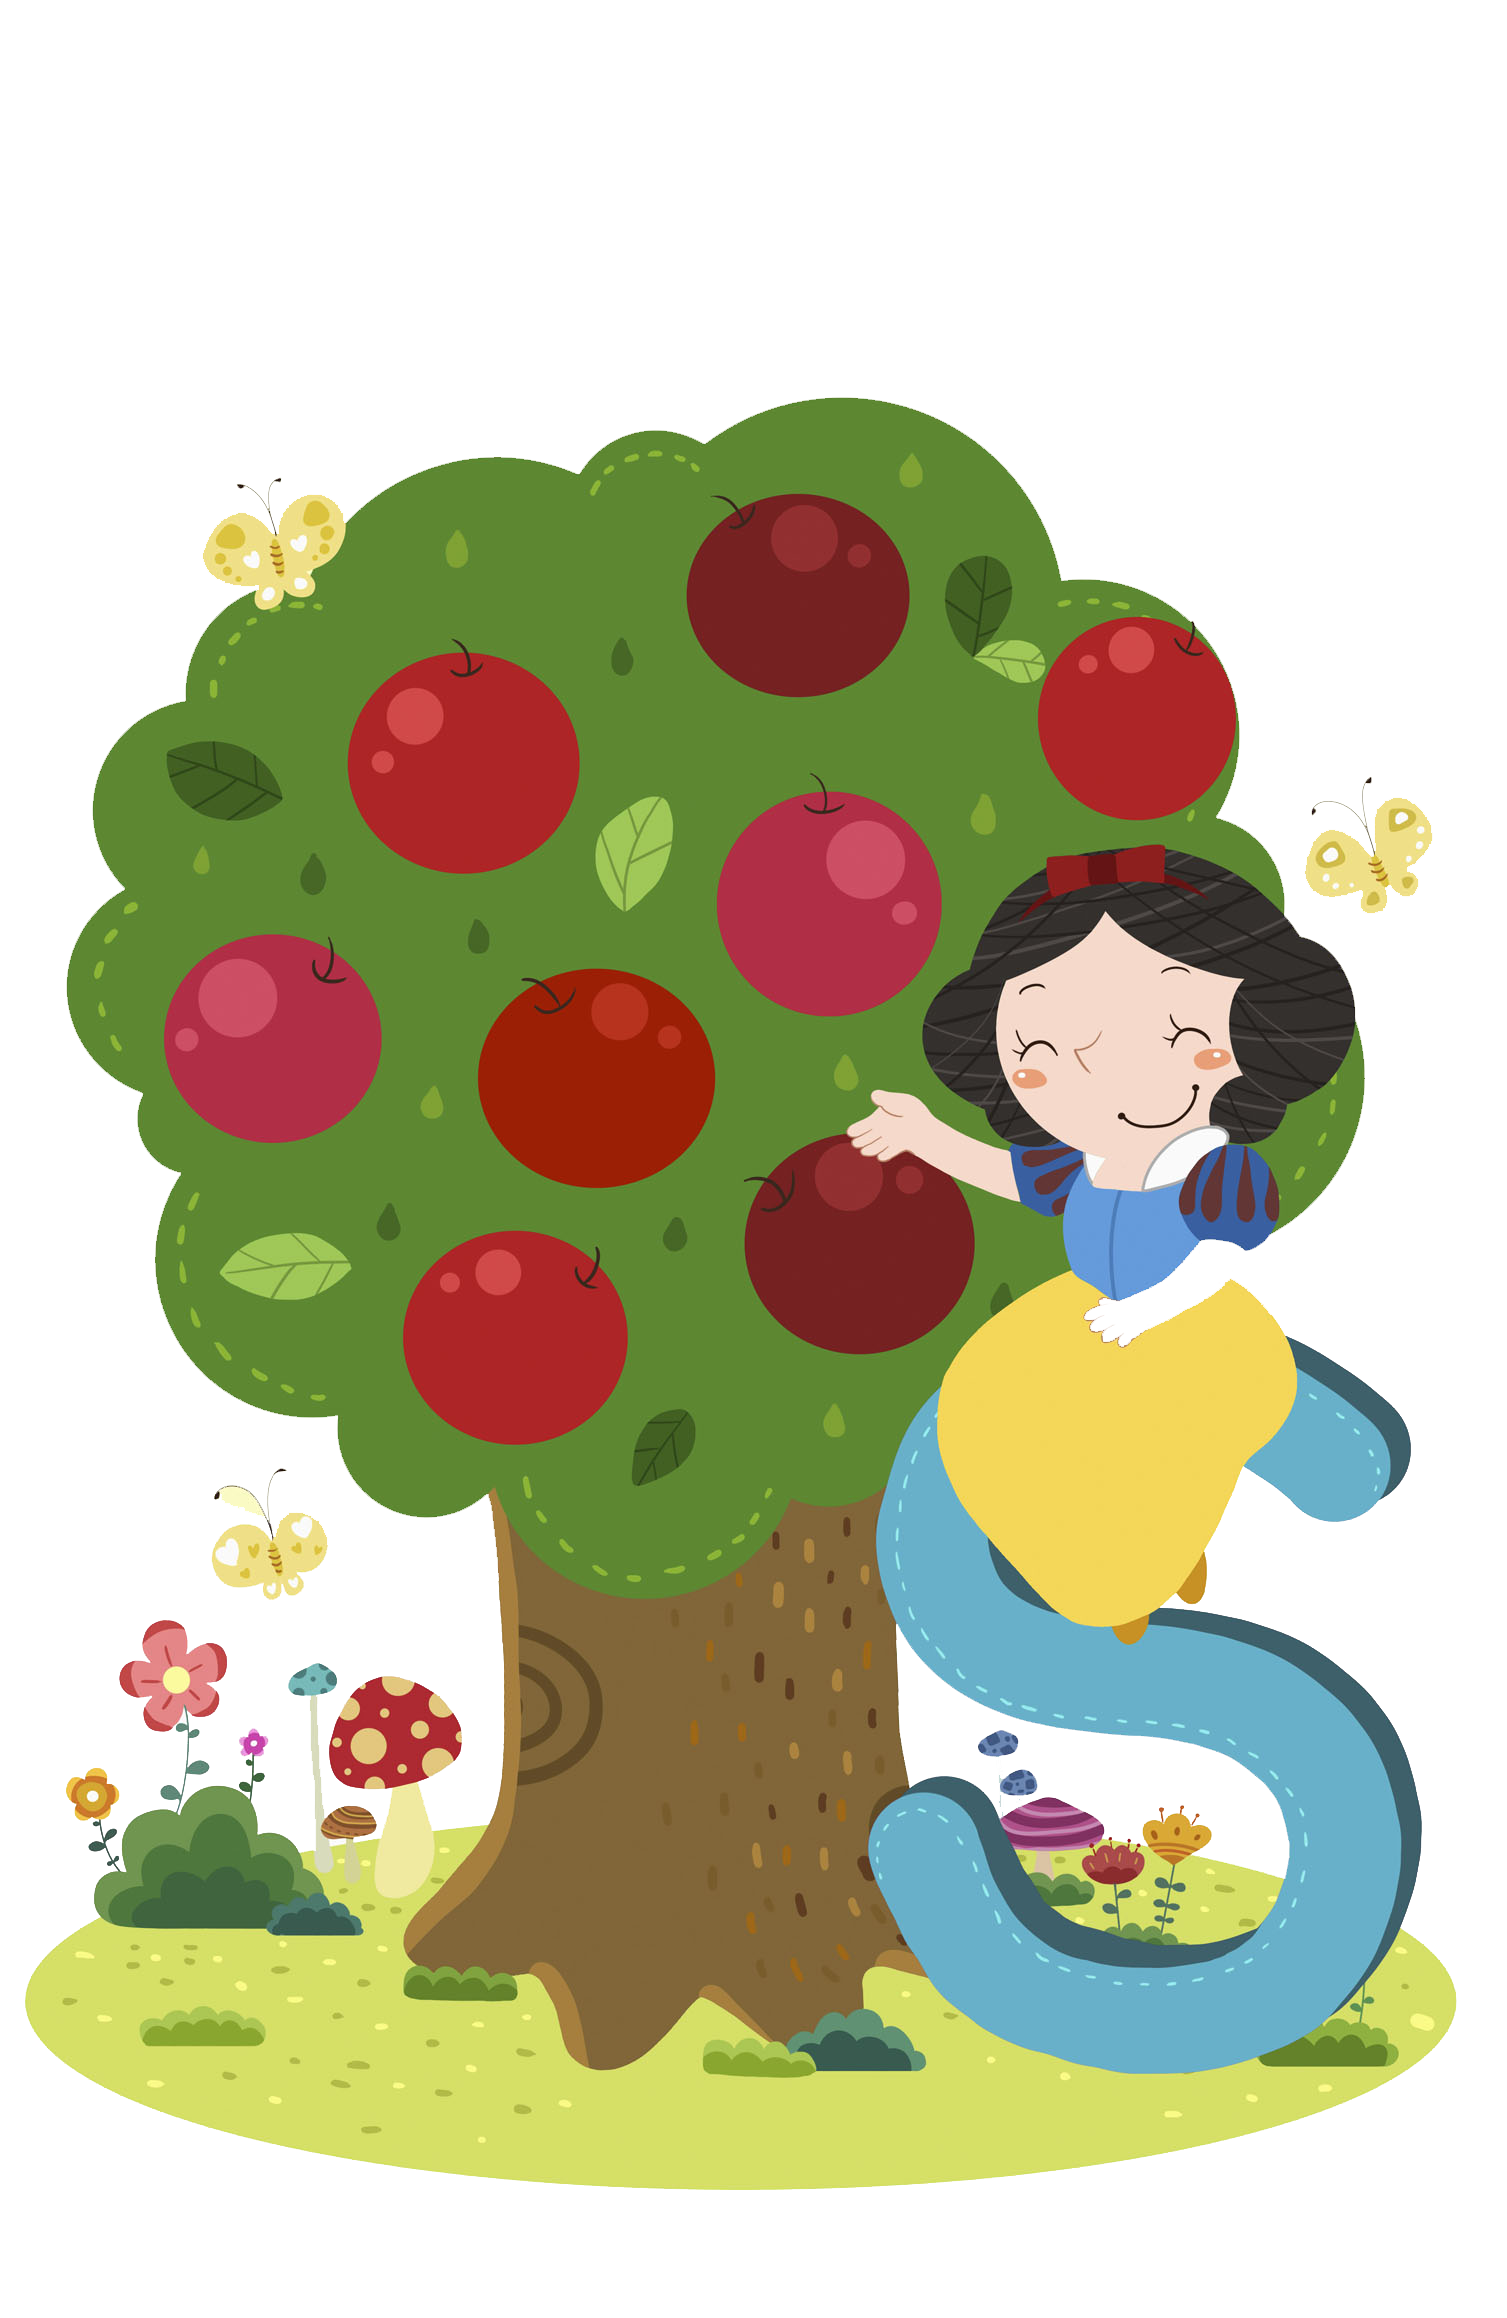 Snow white clipart apple clipart stock Snow White Apple Cartoon Illustration - Hand-painted apple tree 1507 ... clipart stock